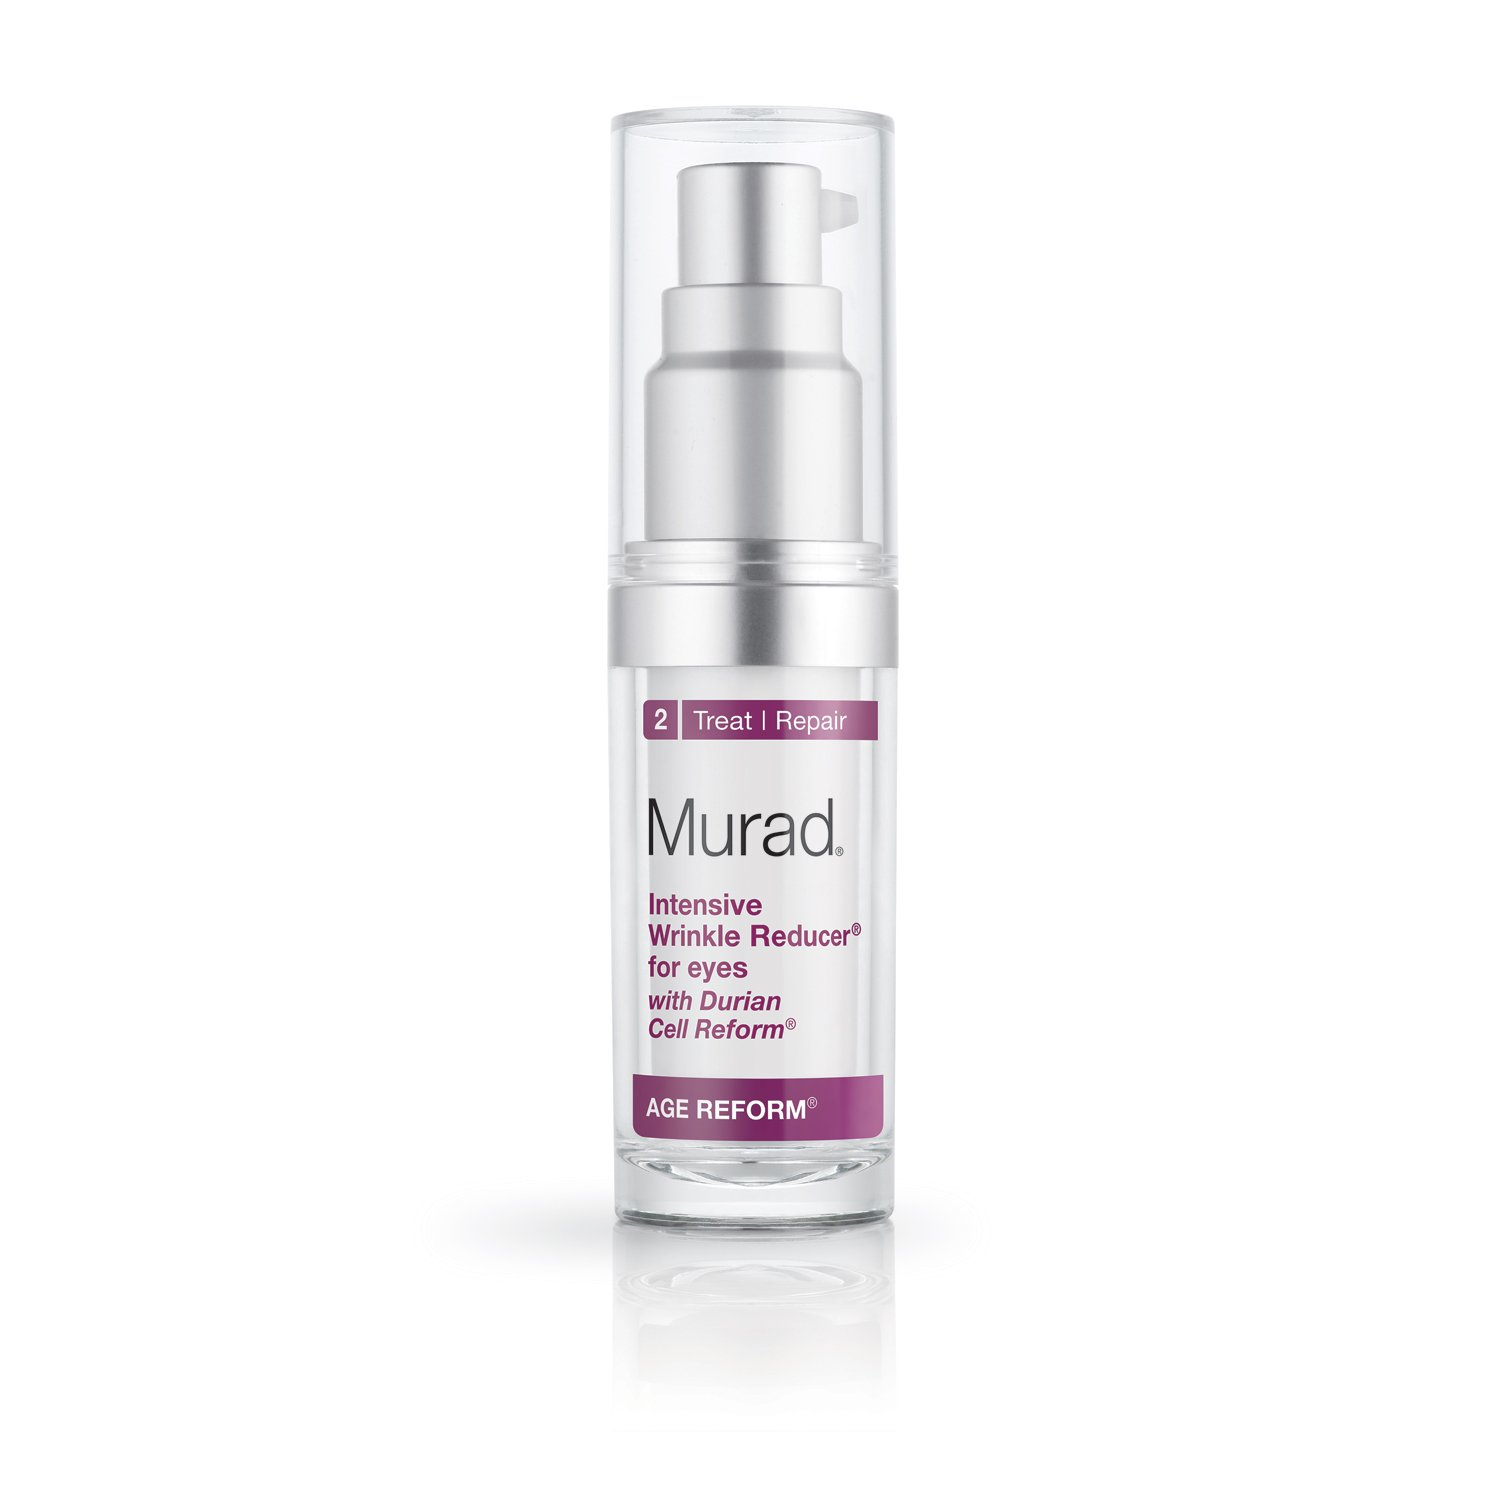 Murad Intensive Wrinkle Reducer for Eyes with Durian Cell Refom, 0.5 Fluid Ounce by Murad (Image #1)